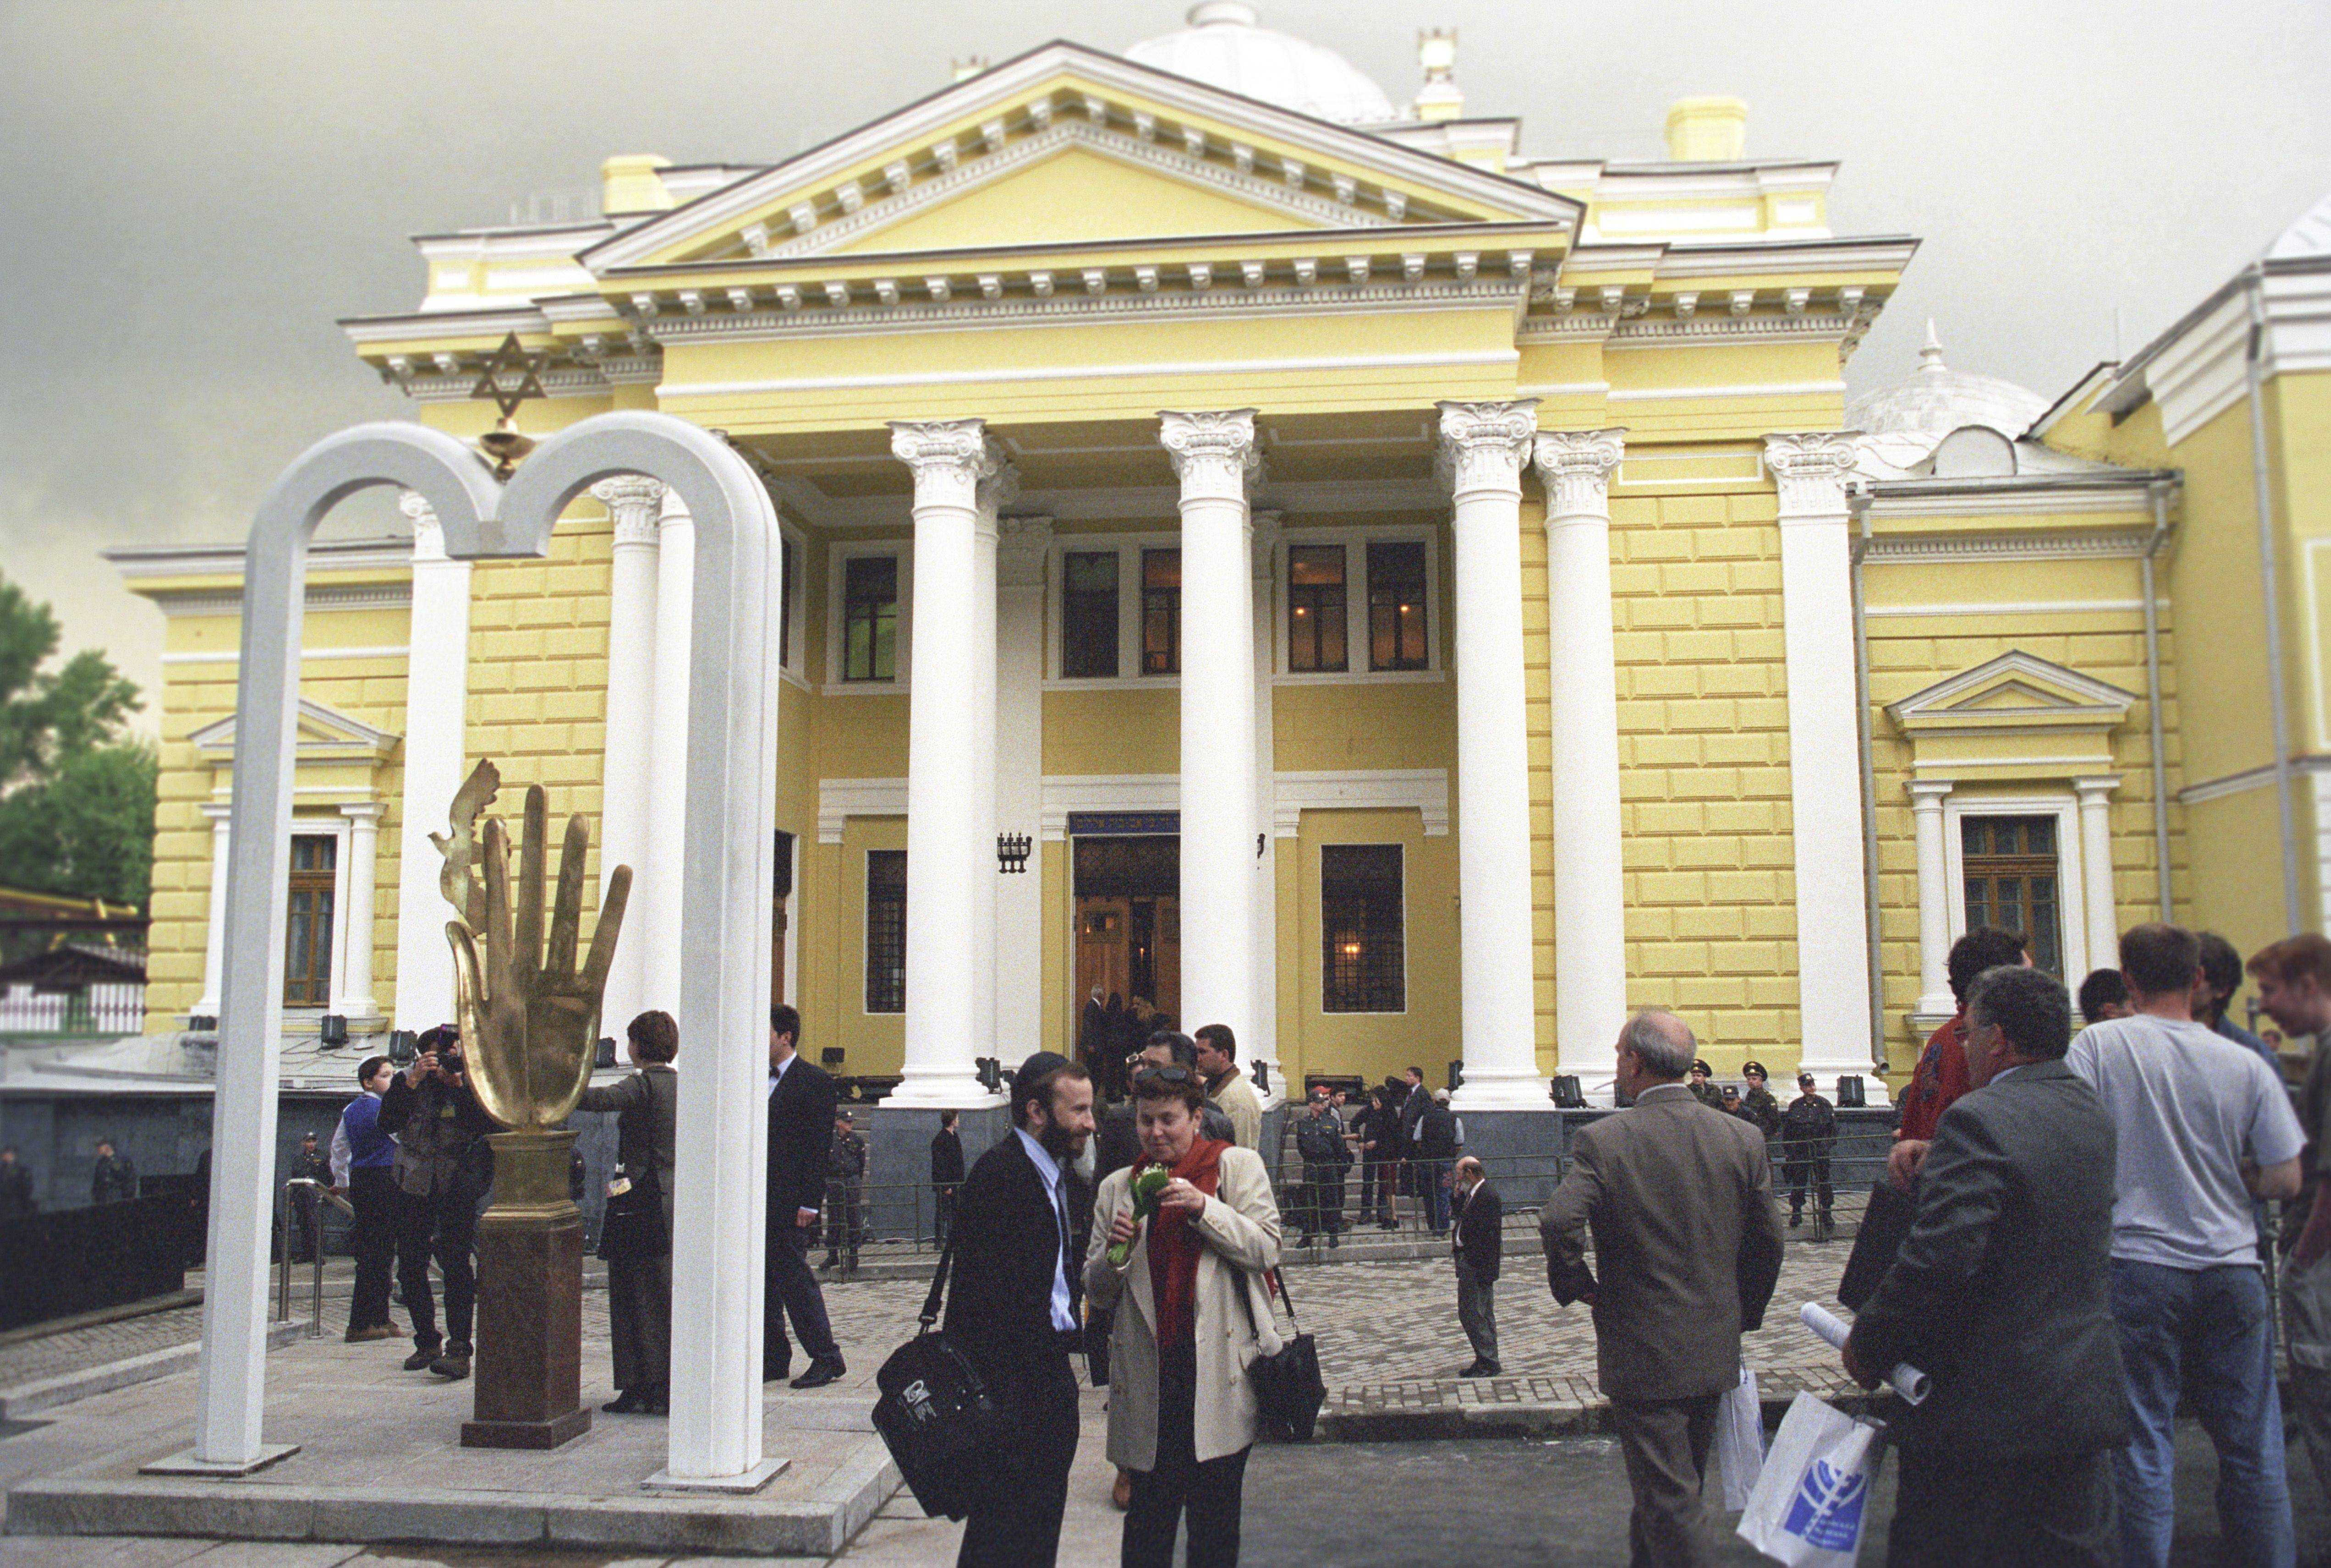 Moscow Choral Synagogue: Description of the Sight